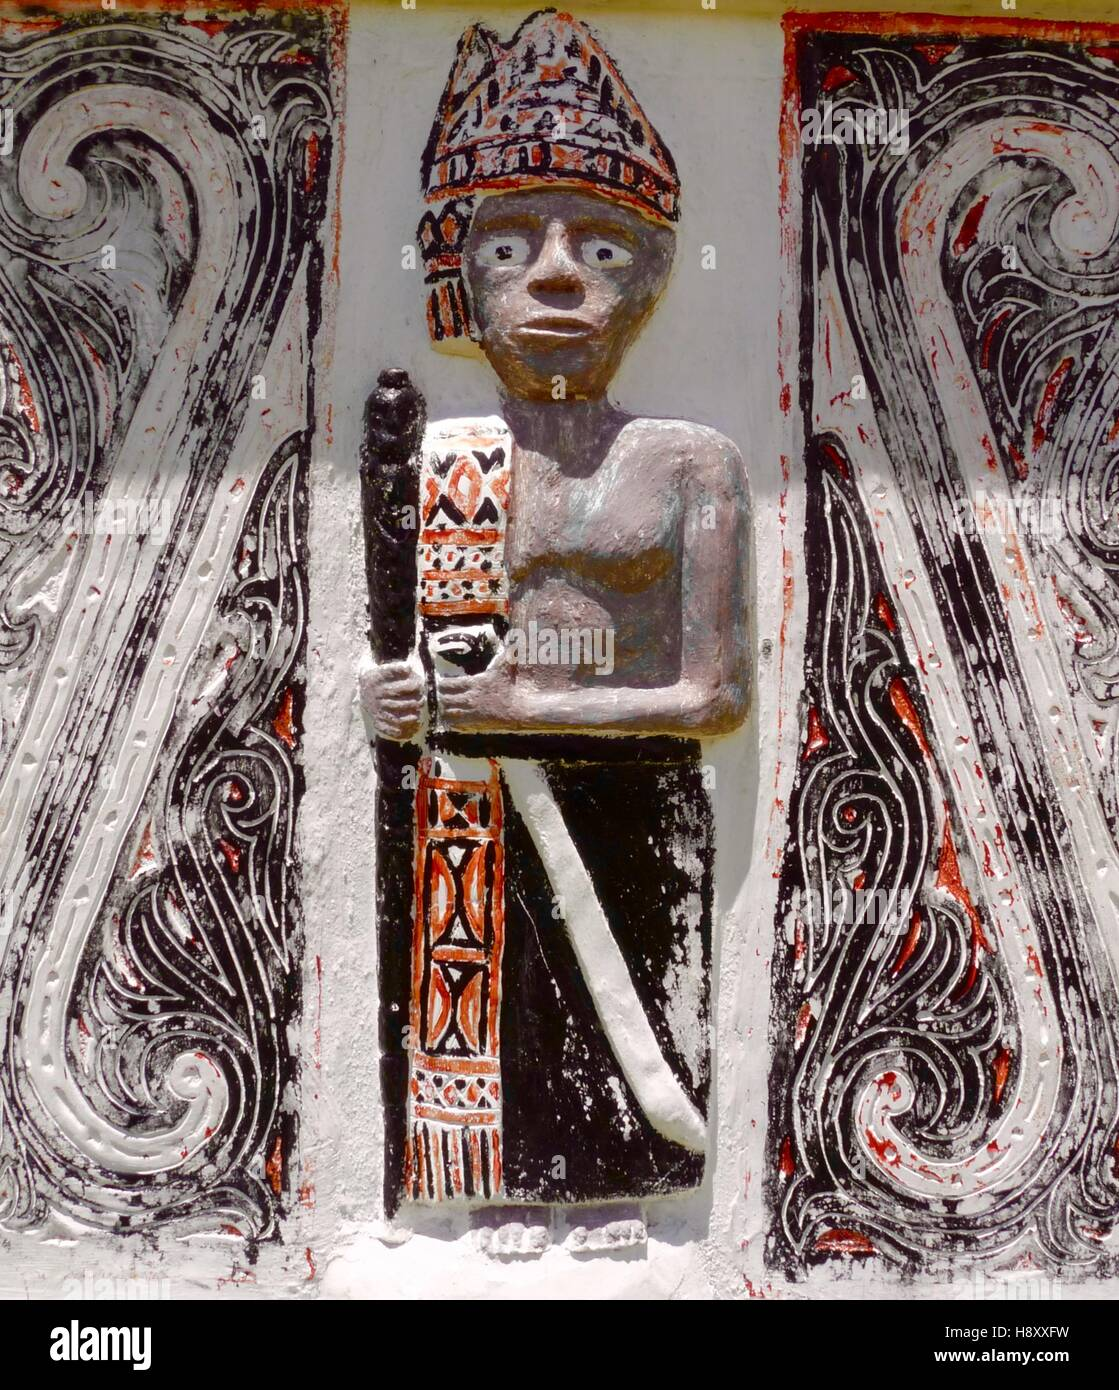 Carving of figure of Batak hunter with traditional colours and design of that ethnic group from the Indonesian island - Stock Image